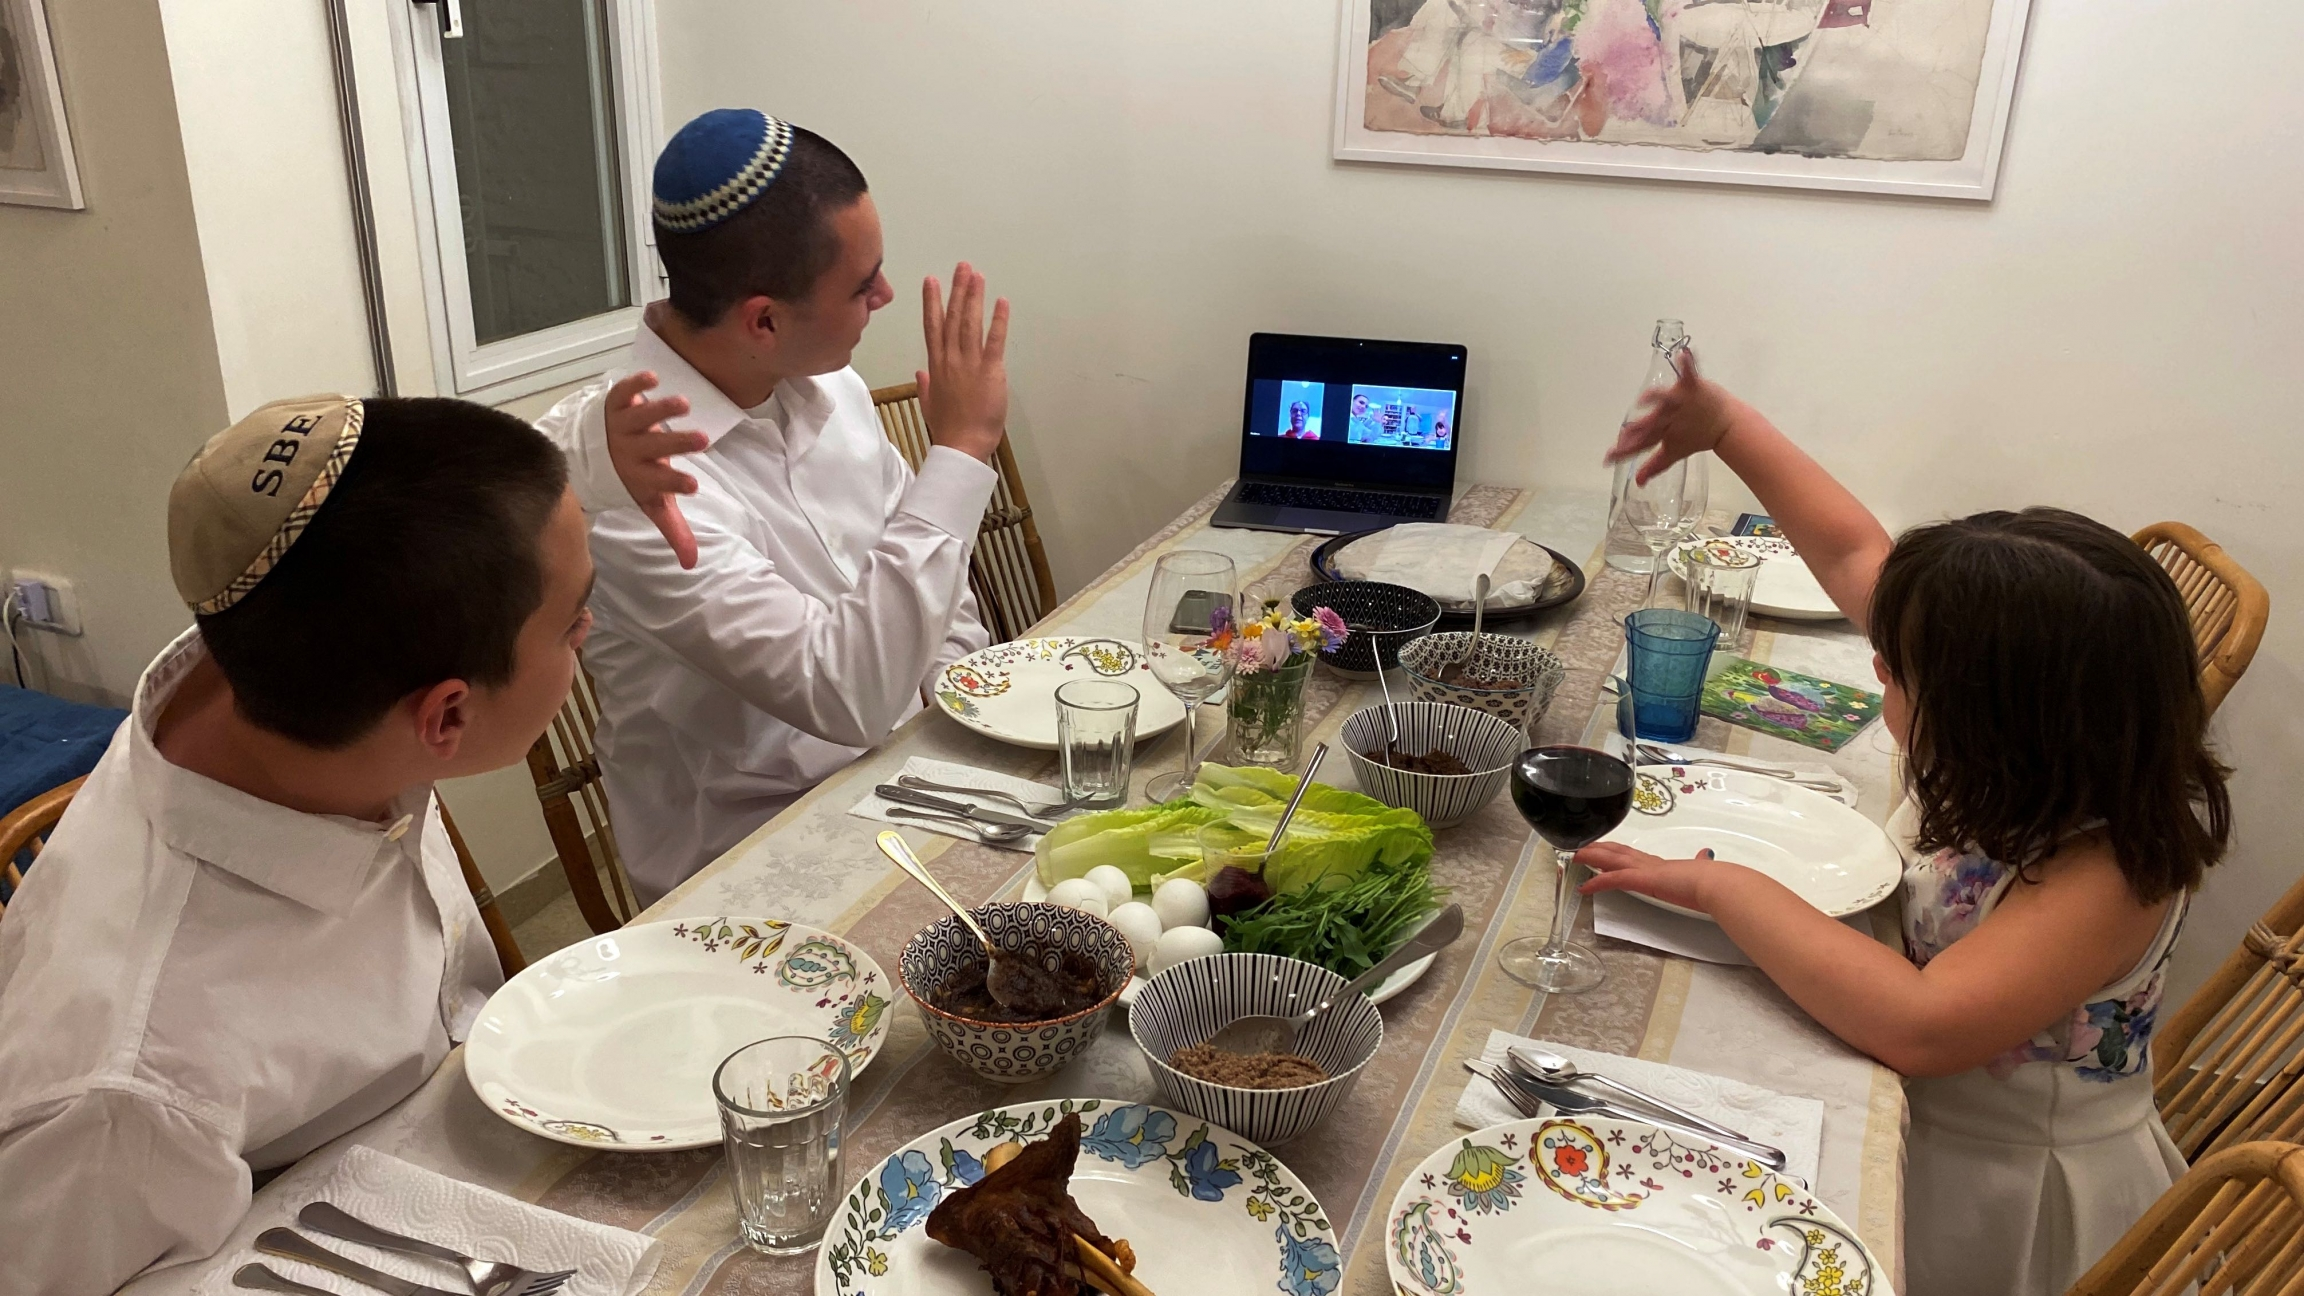 Three siblings in Mevasseret Zion, near Jerusalem, wave to their their grandmother in Haifa as she joins their Passover Seder via Zoom application as Israel takes stringent steps to contain the coronavirus (COVID-19) April 8, 2020.